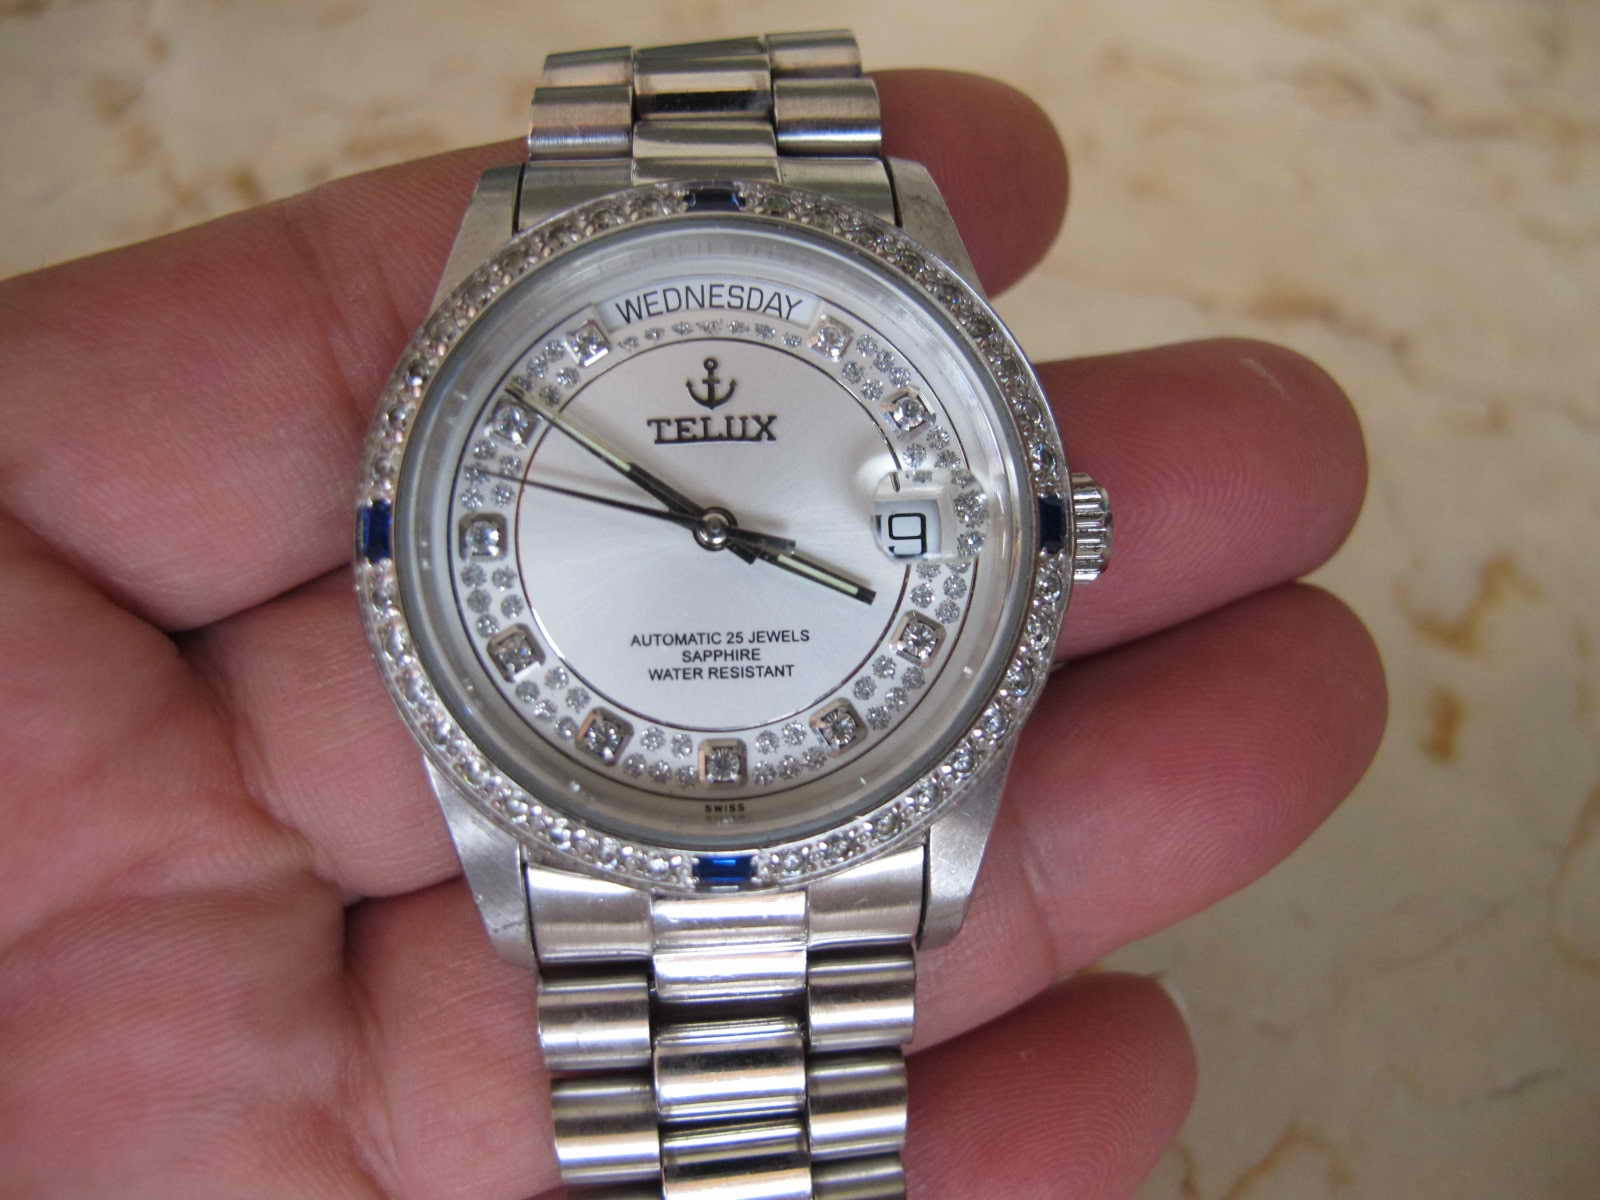 TELUX WHITE DIAL SAPPHIRE AUTOMATIC SOLD Jam tangan